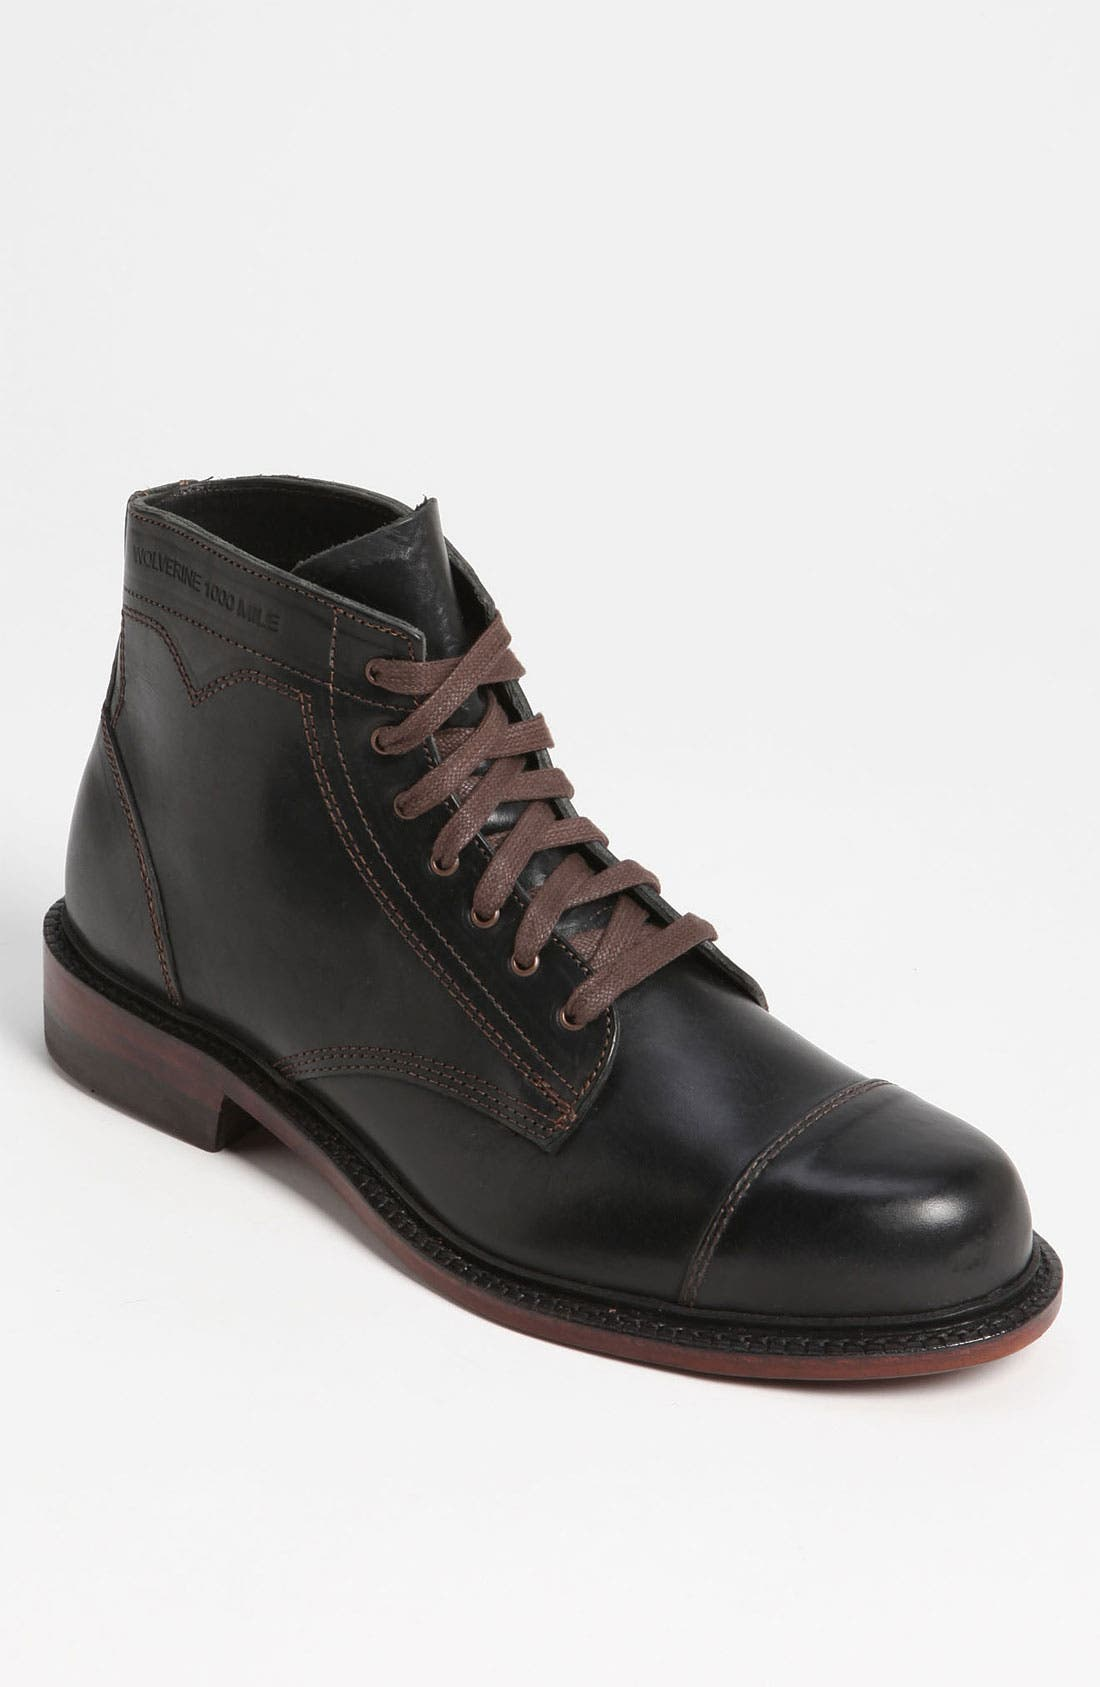 Main Image - Wolverine '1000 Mile - Krause' Cap Toe Boot